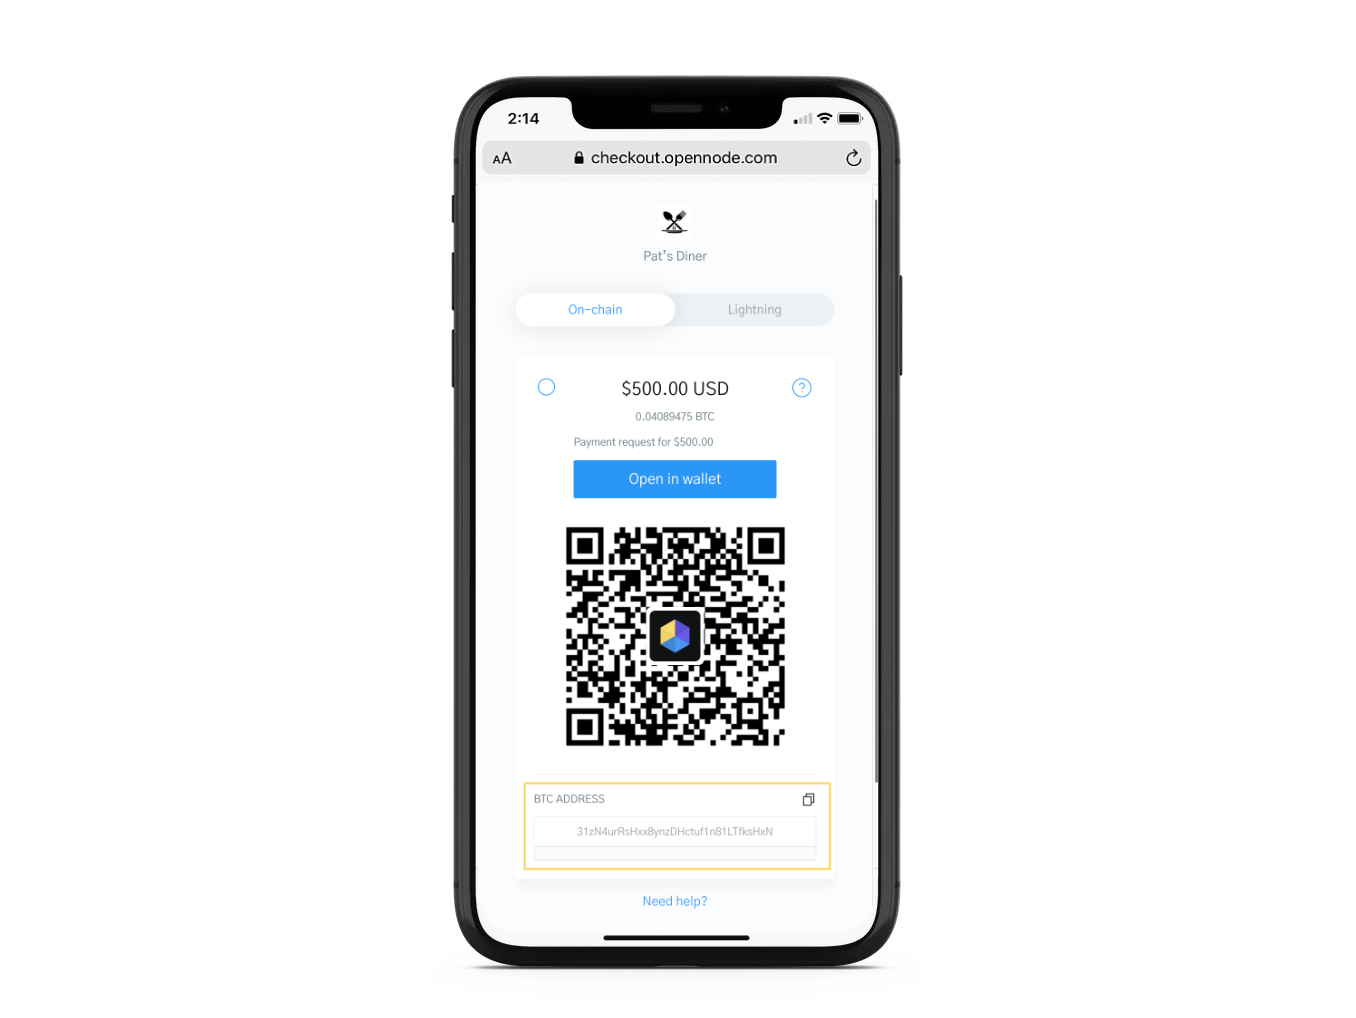 Image of a phone displaying a Bitcoin checkout on OpenNode with focus on the Bitcoin Wallet Addrress